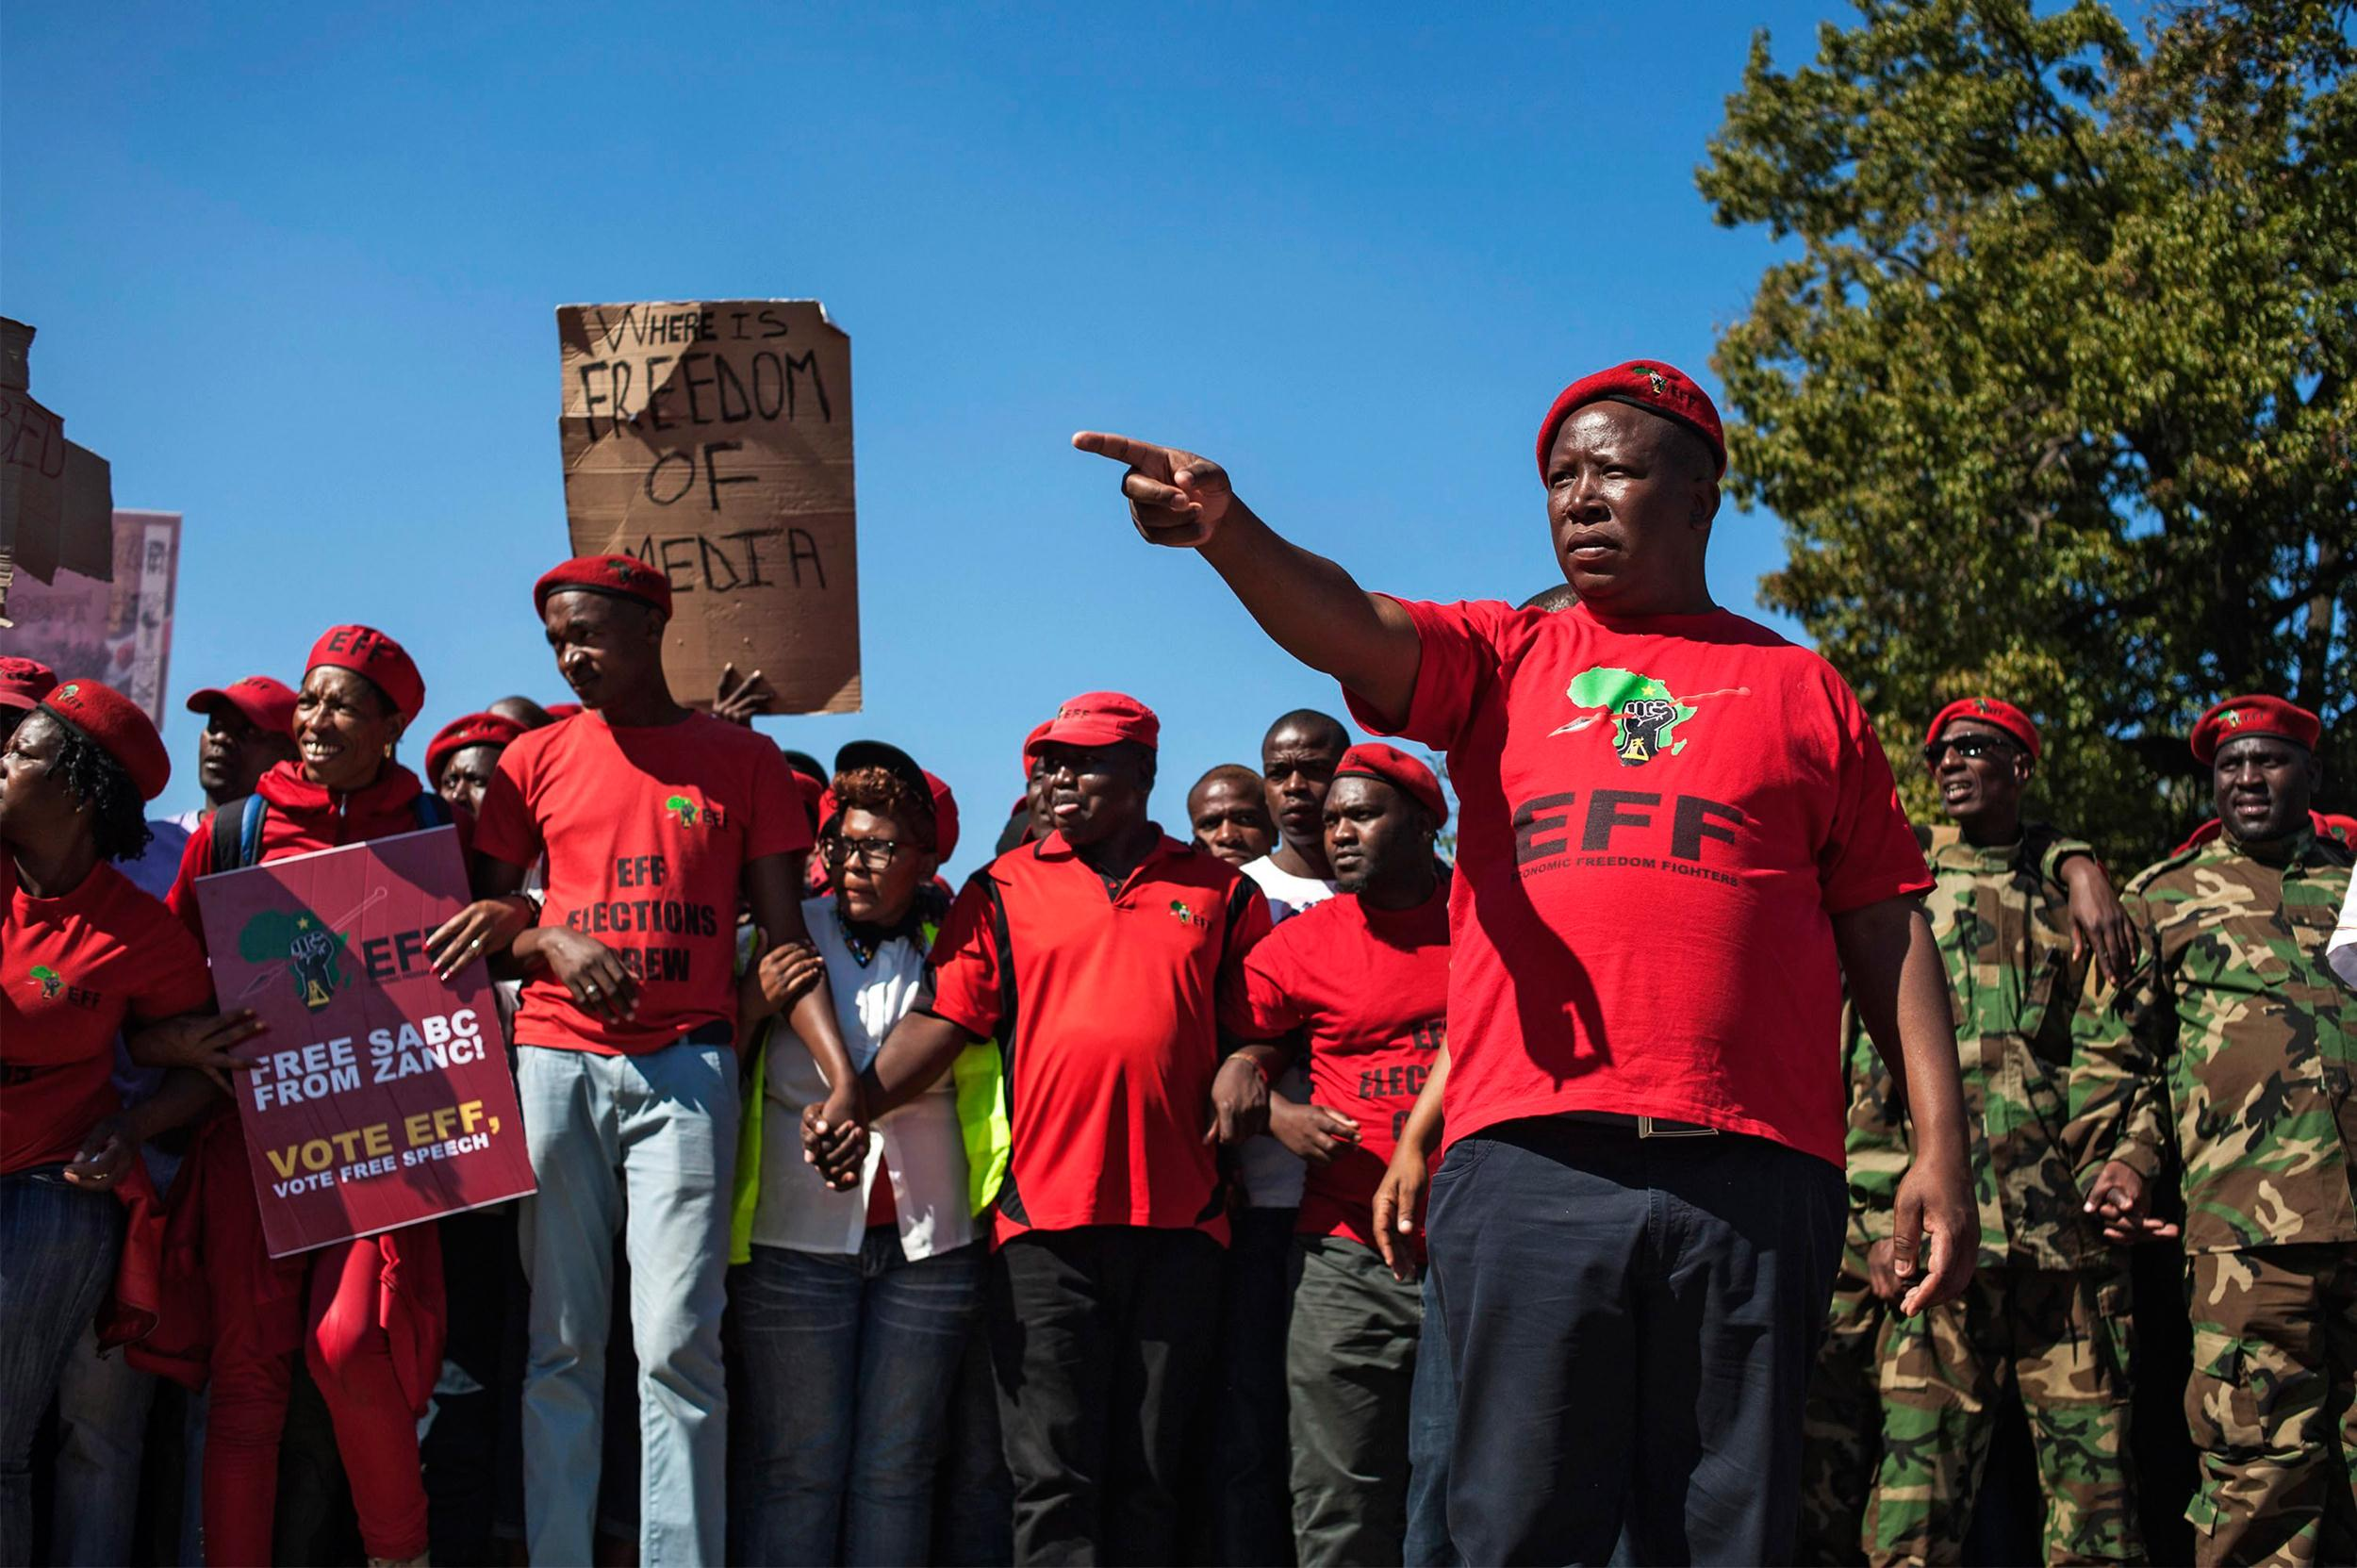 Image: Julius Malema, leader of the South African political party The Economic Freedom Fighters (EFF)